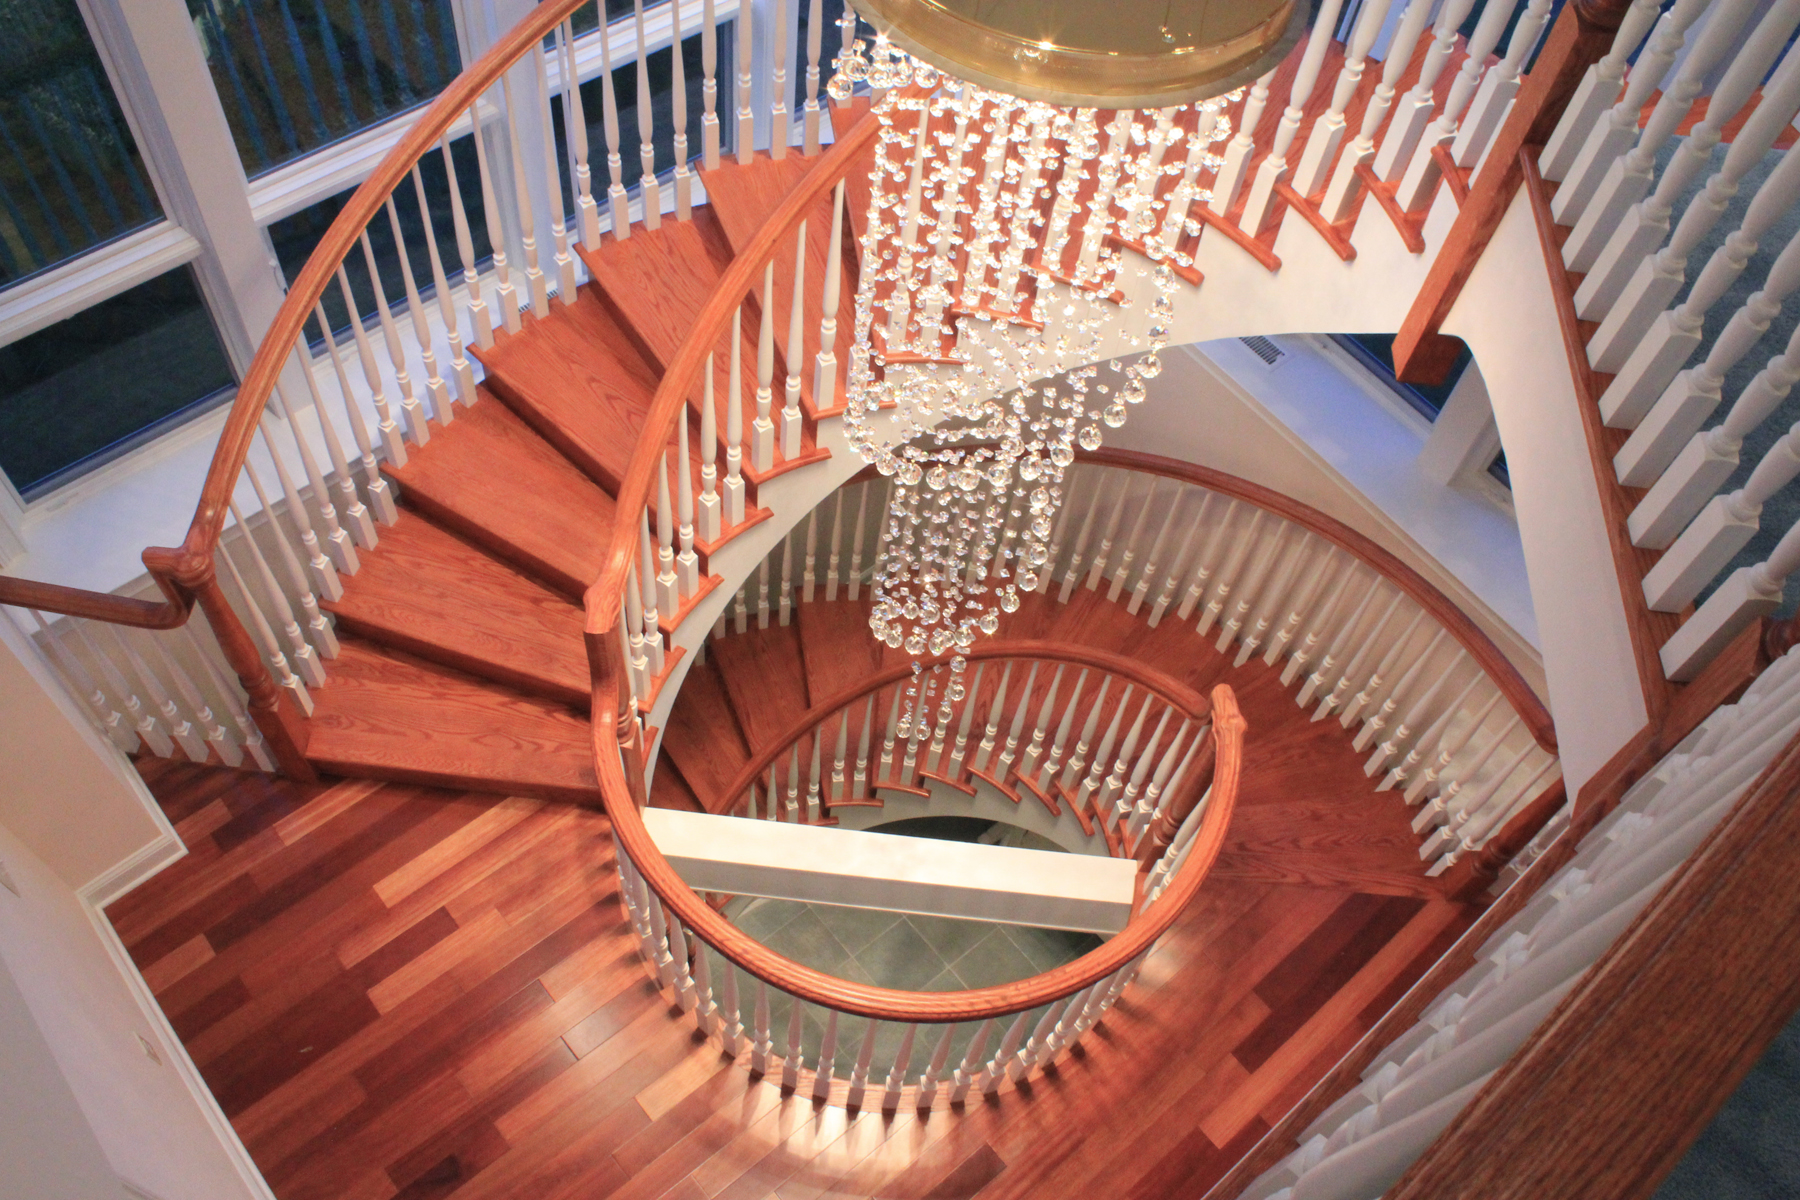 Lighting Basement Washroom Stairs: 40 Breathtaking Spiral Staircases To Dream About Having In